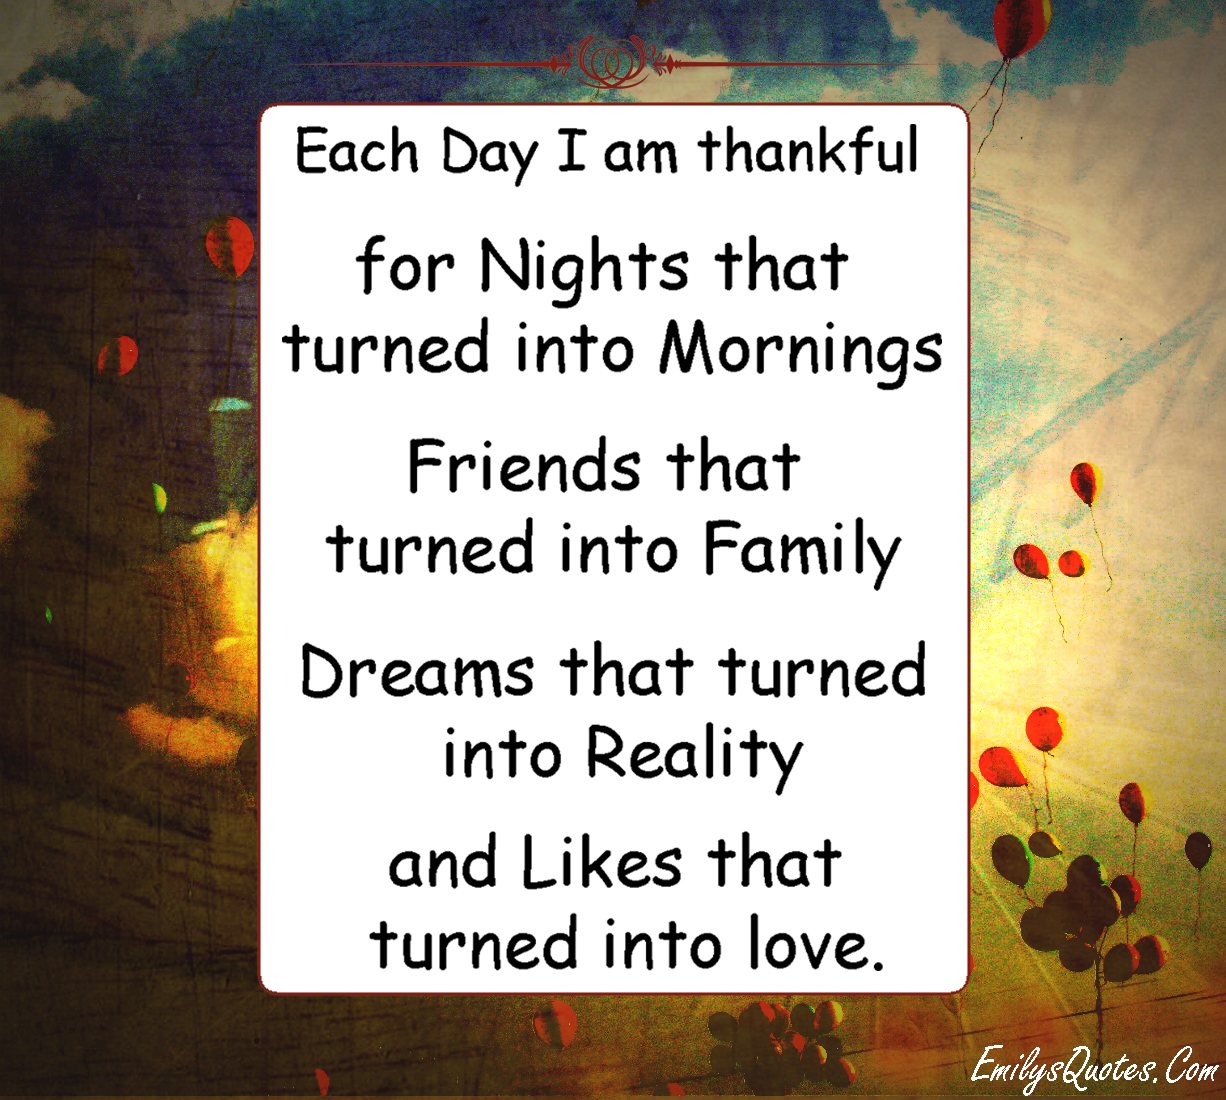 Inspiring Quotes About Friendship Each Day I Am Thankful For Nights That Turned Into Mornings